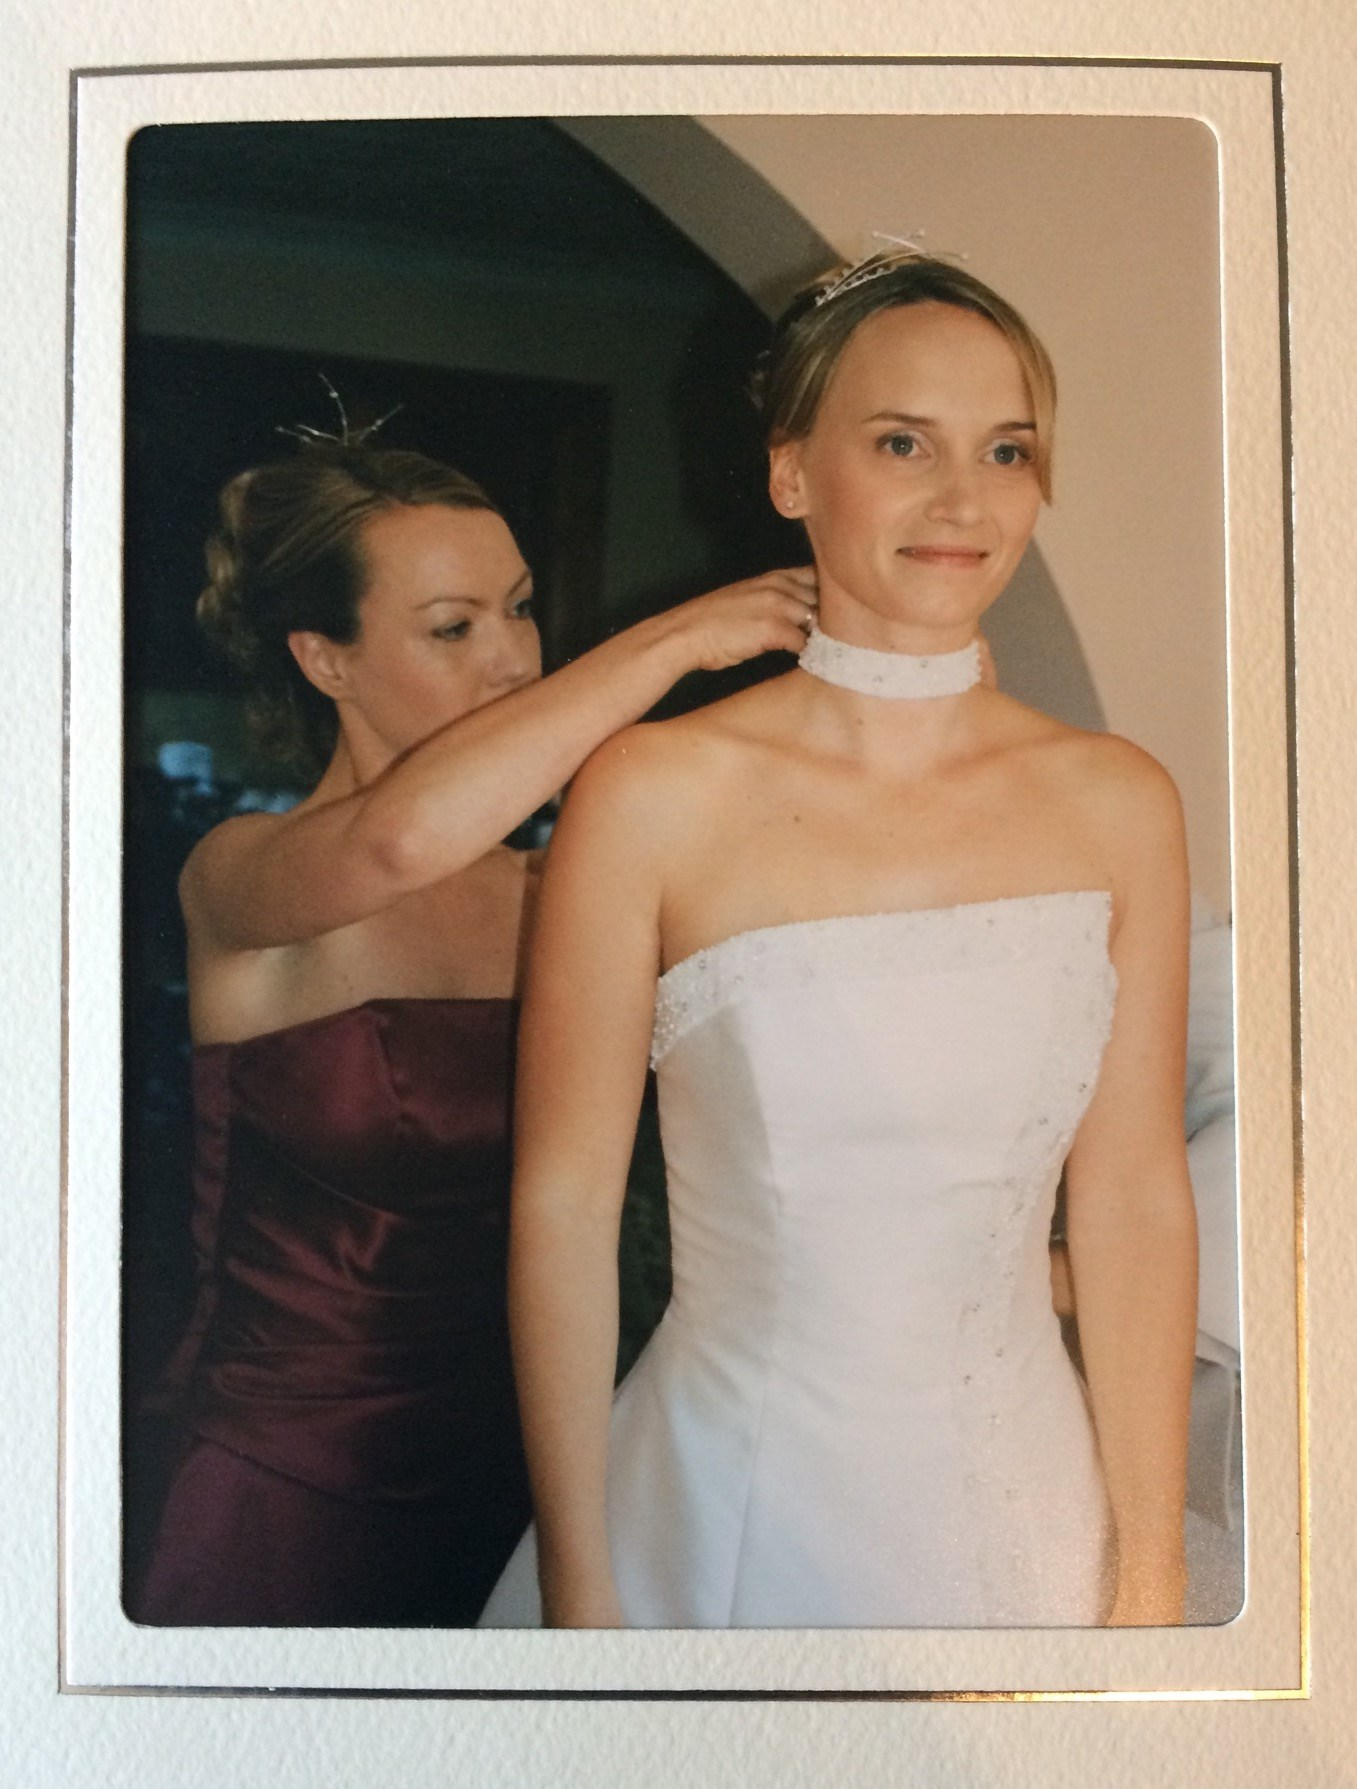 Kate helping me get ready for the big day!